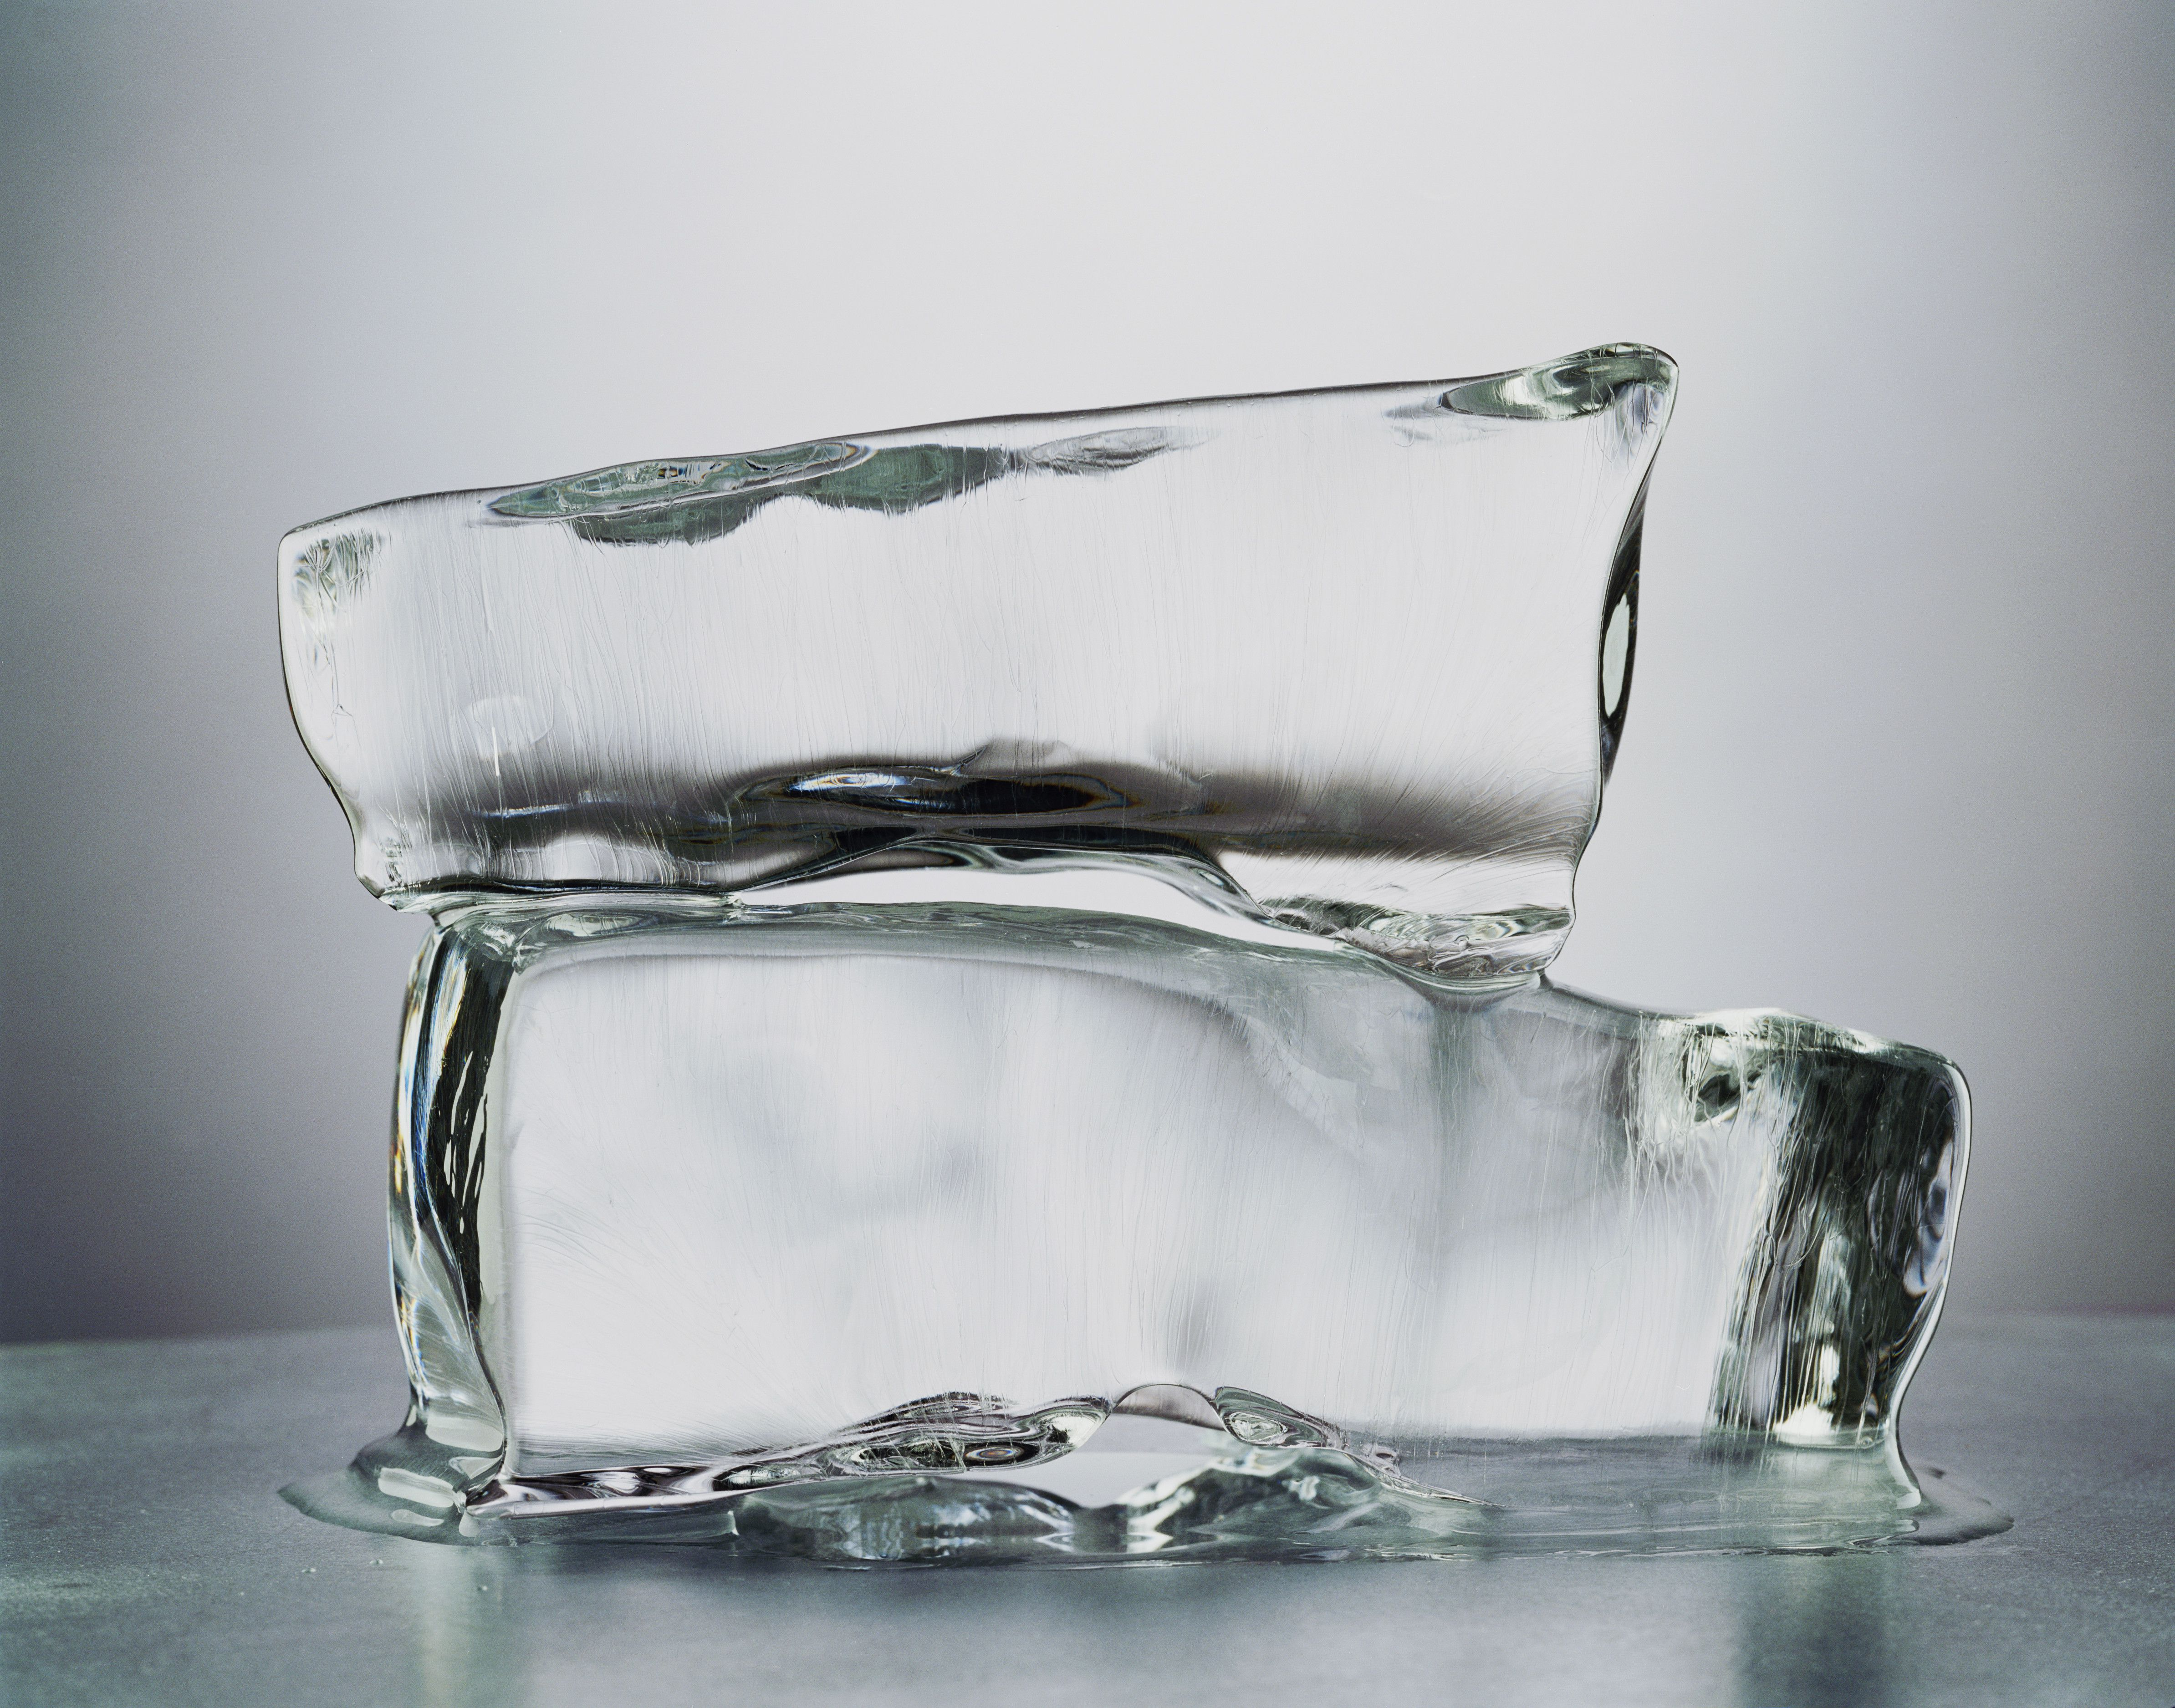 How Salt Melts Ice And Prevents Water From Freezing